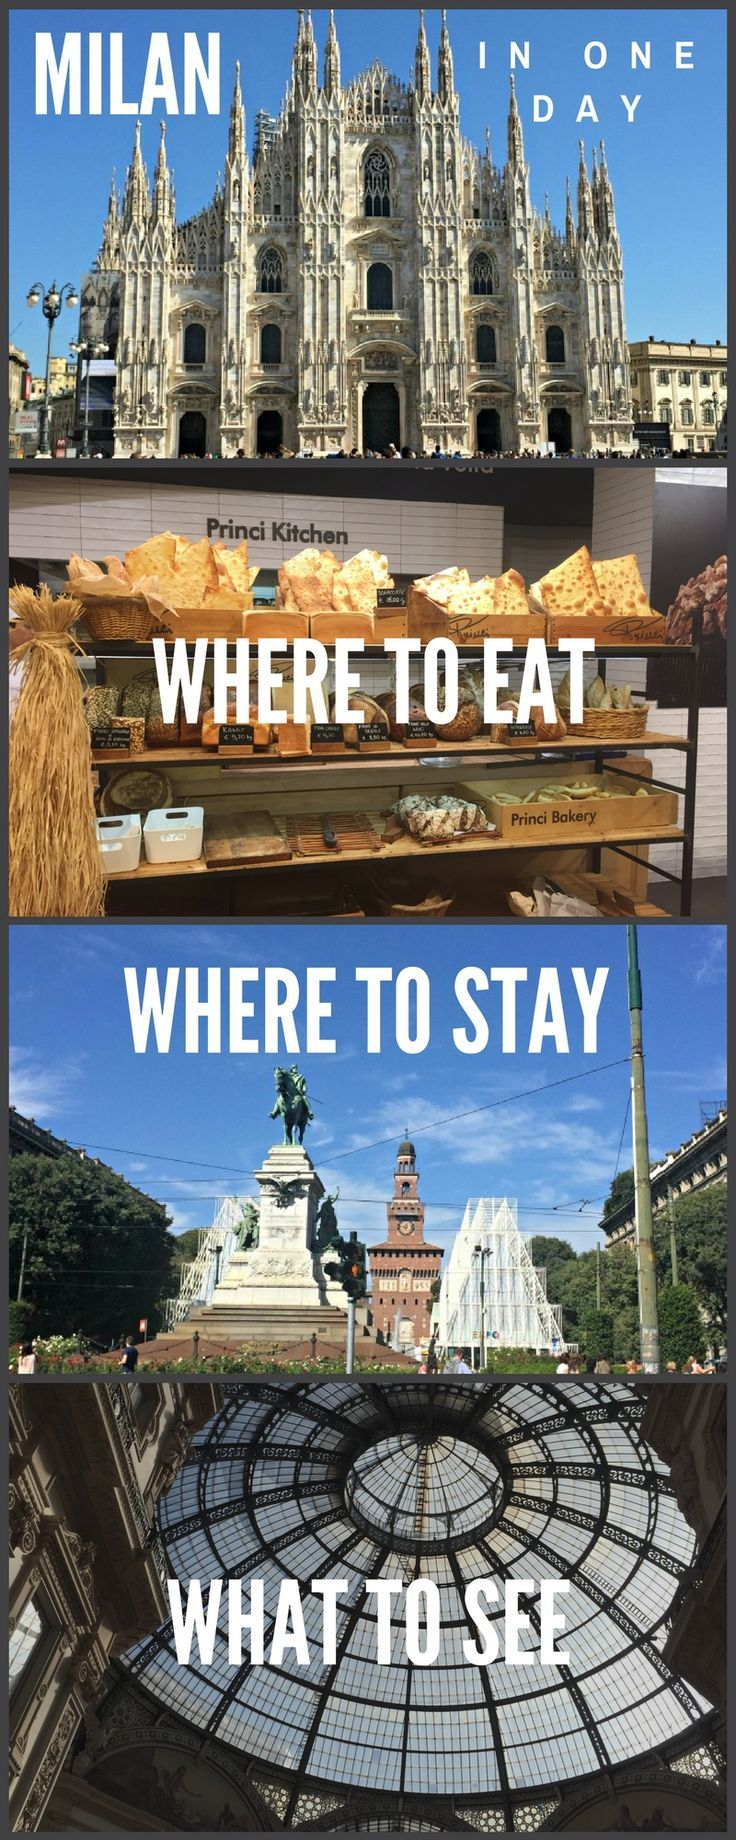 A guide to the best things to see in Milan, where to eat in Milan and where to stay if you have 1 day in the city. Click on pin to find insider's tips about Milan's best food and attractions. Milan in a day | how to spend one day in Milan | what to see in Milan Italy